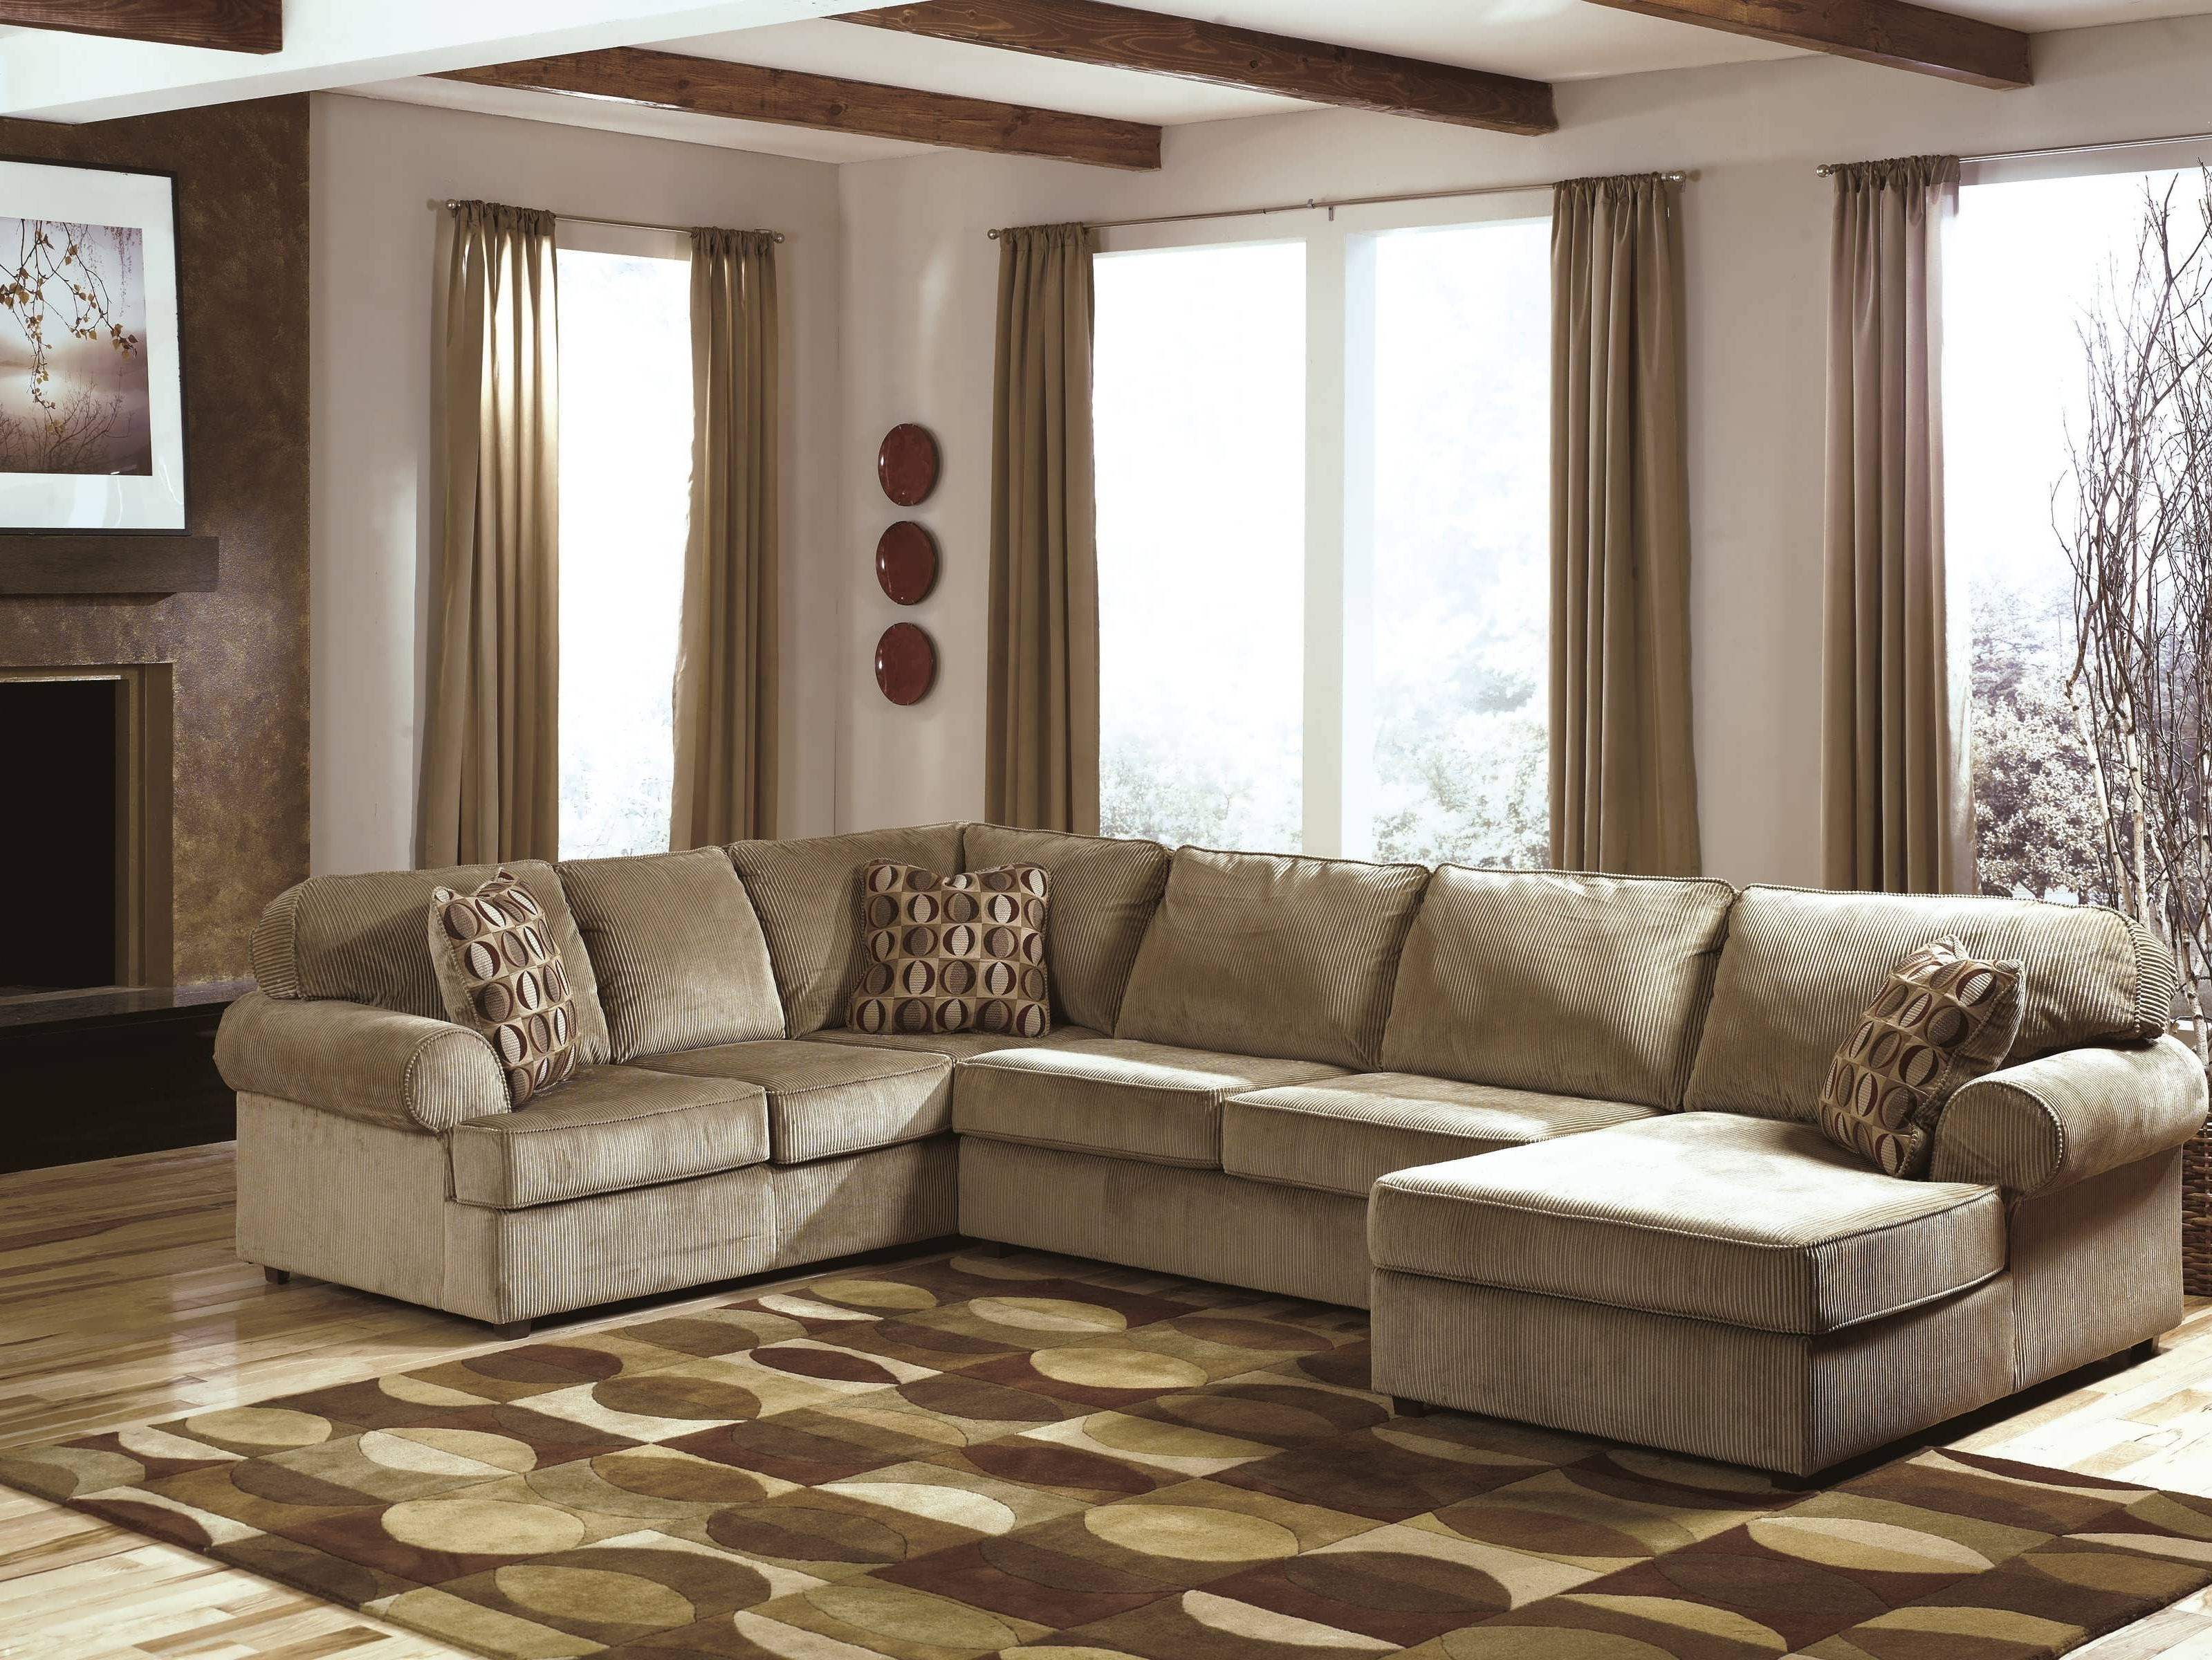 Double Chaise Sectionals Intended For 2018 Sofa : Modular Sectional Sofa Reclining Sectional Couch Sectionals (View 11 of 15)